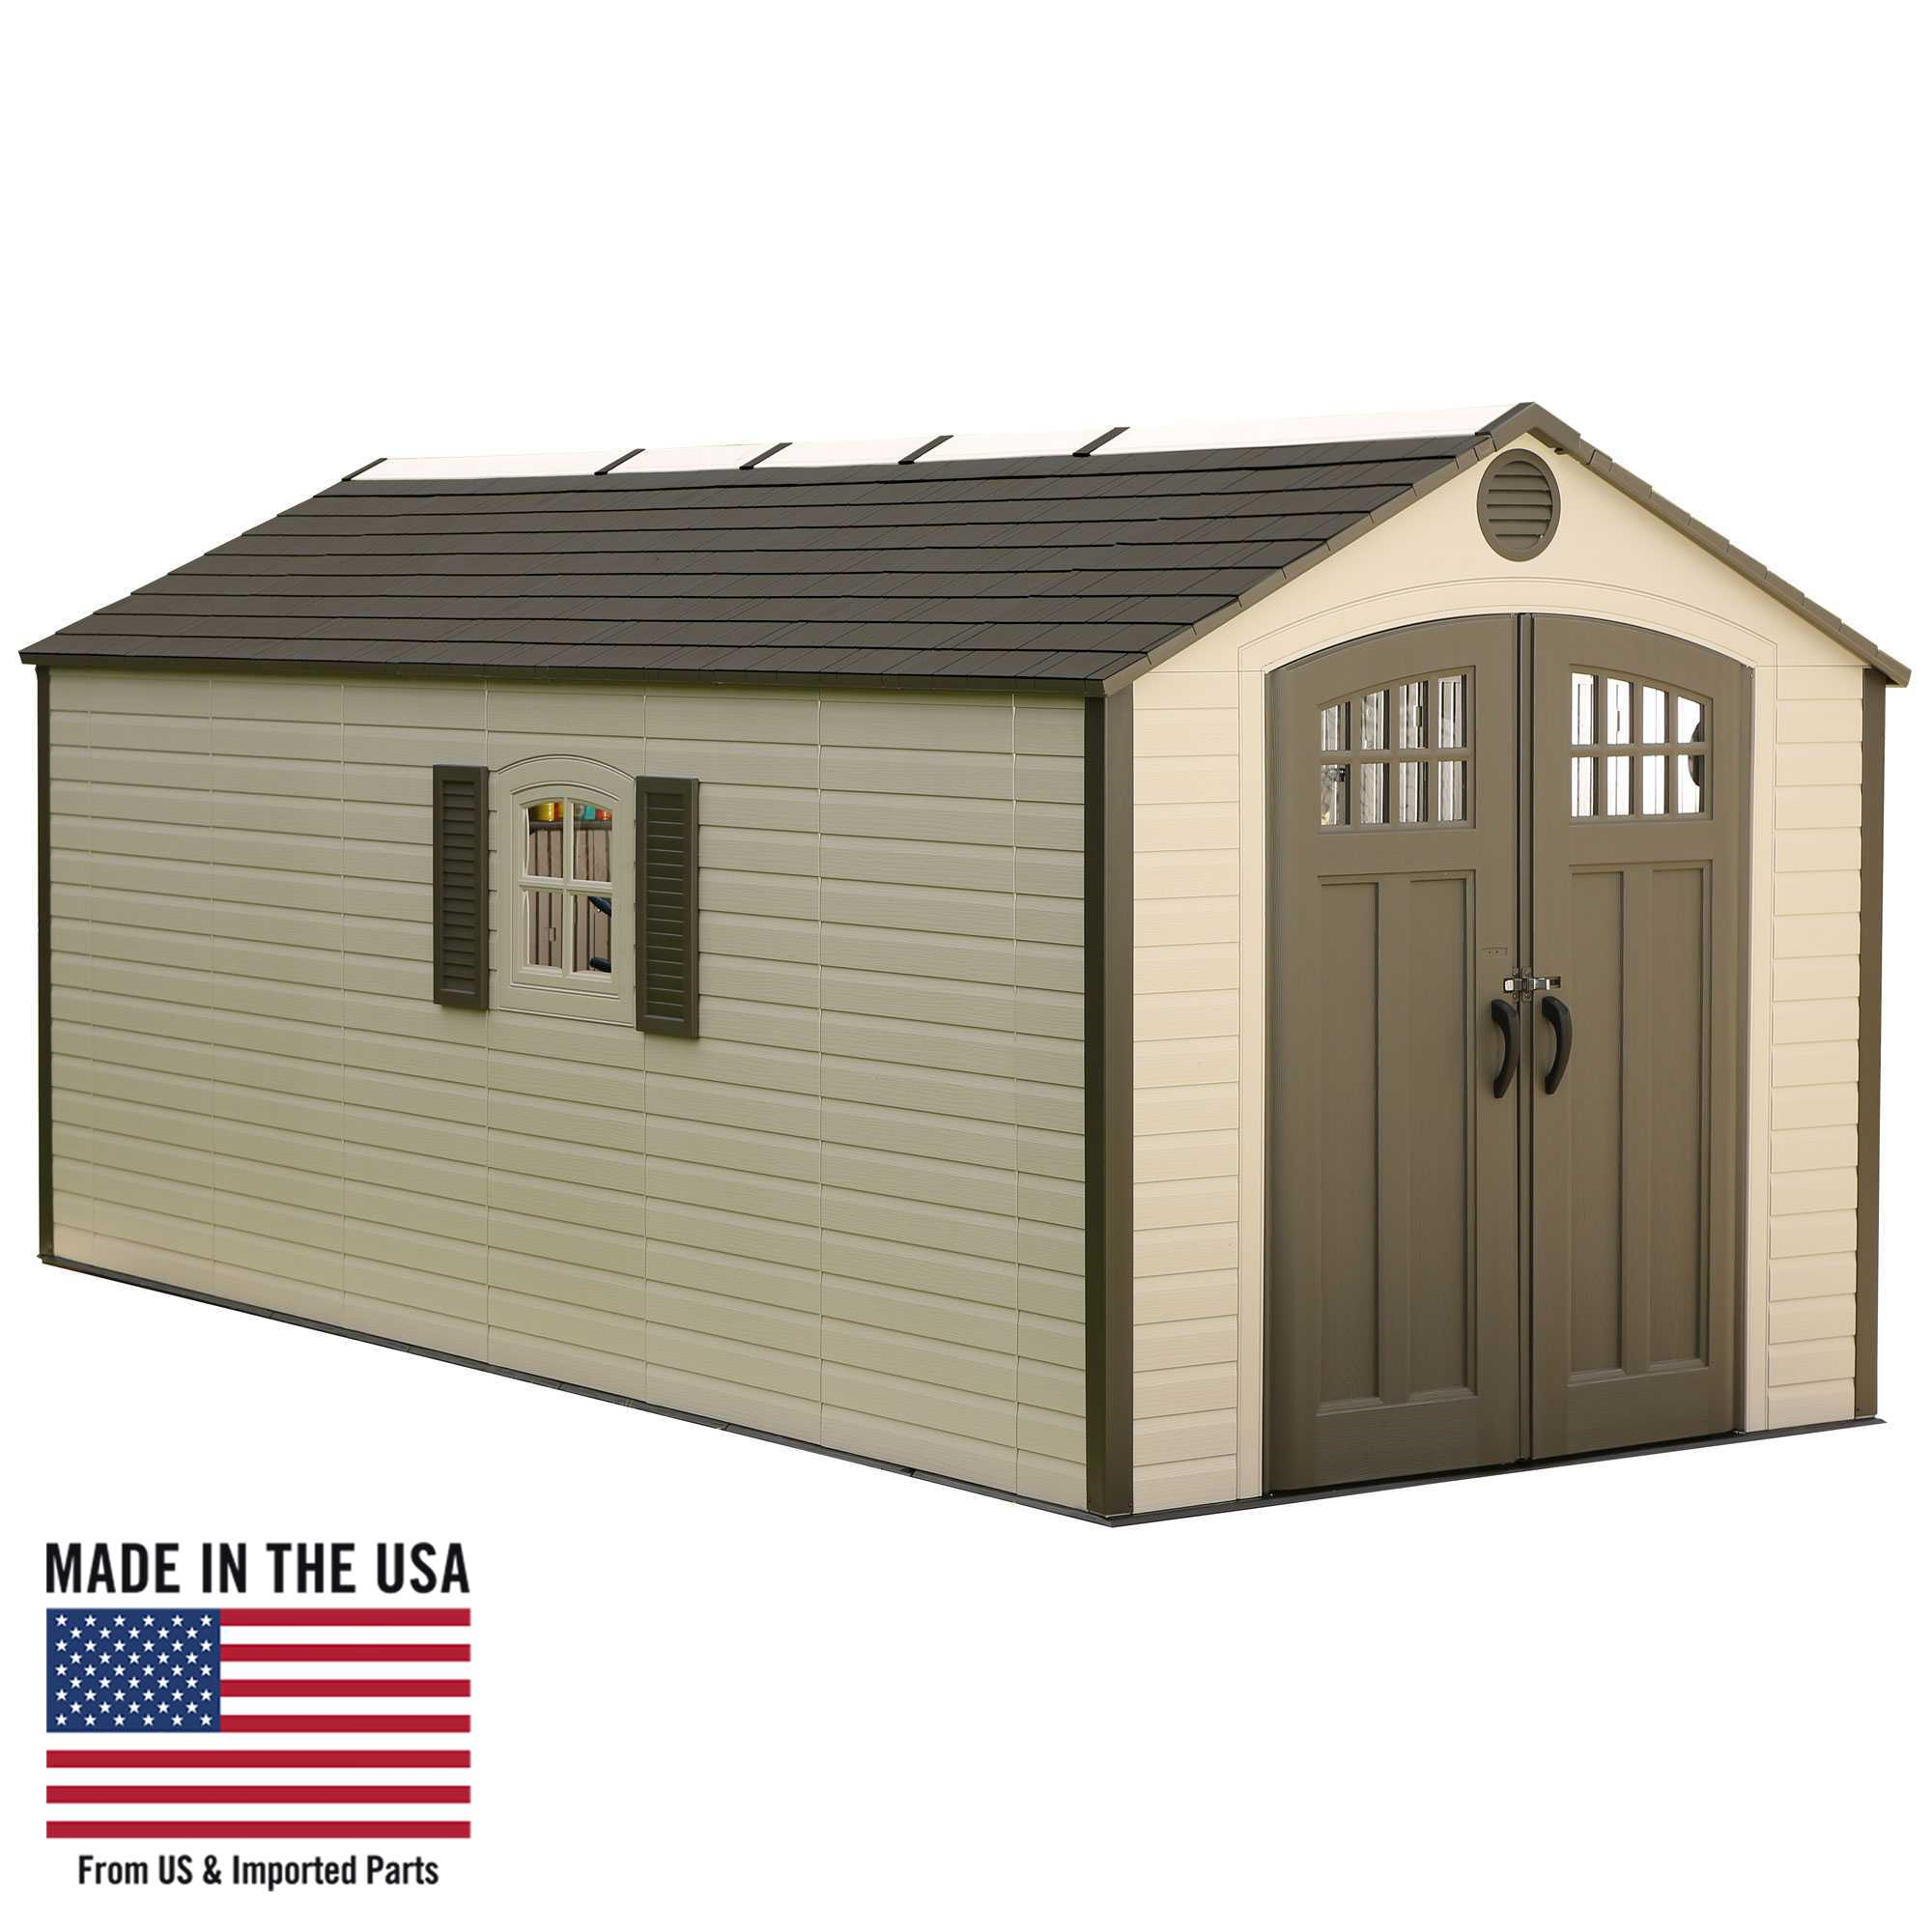 Lifetime 8 Ft. x 17.5 Ft. Outdoor Storage Shed